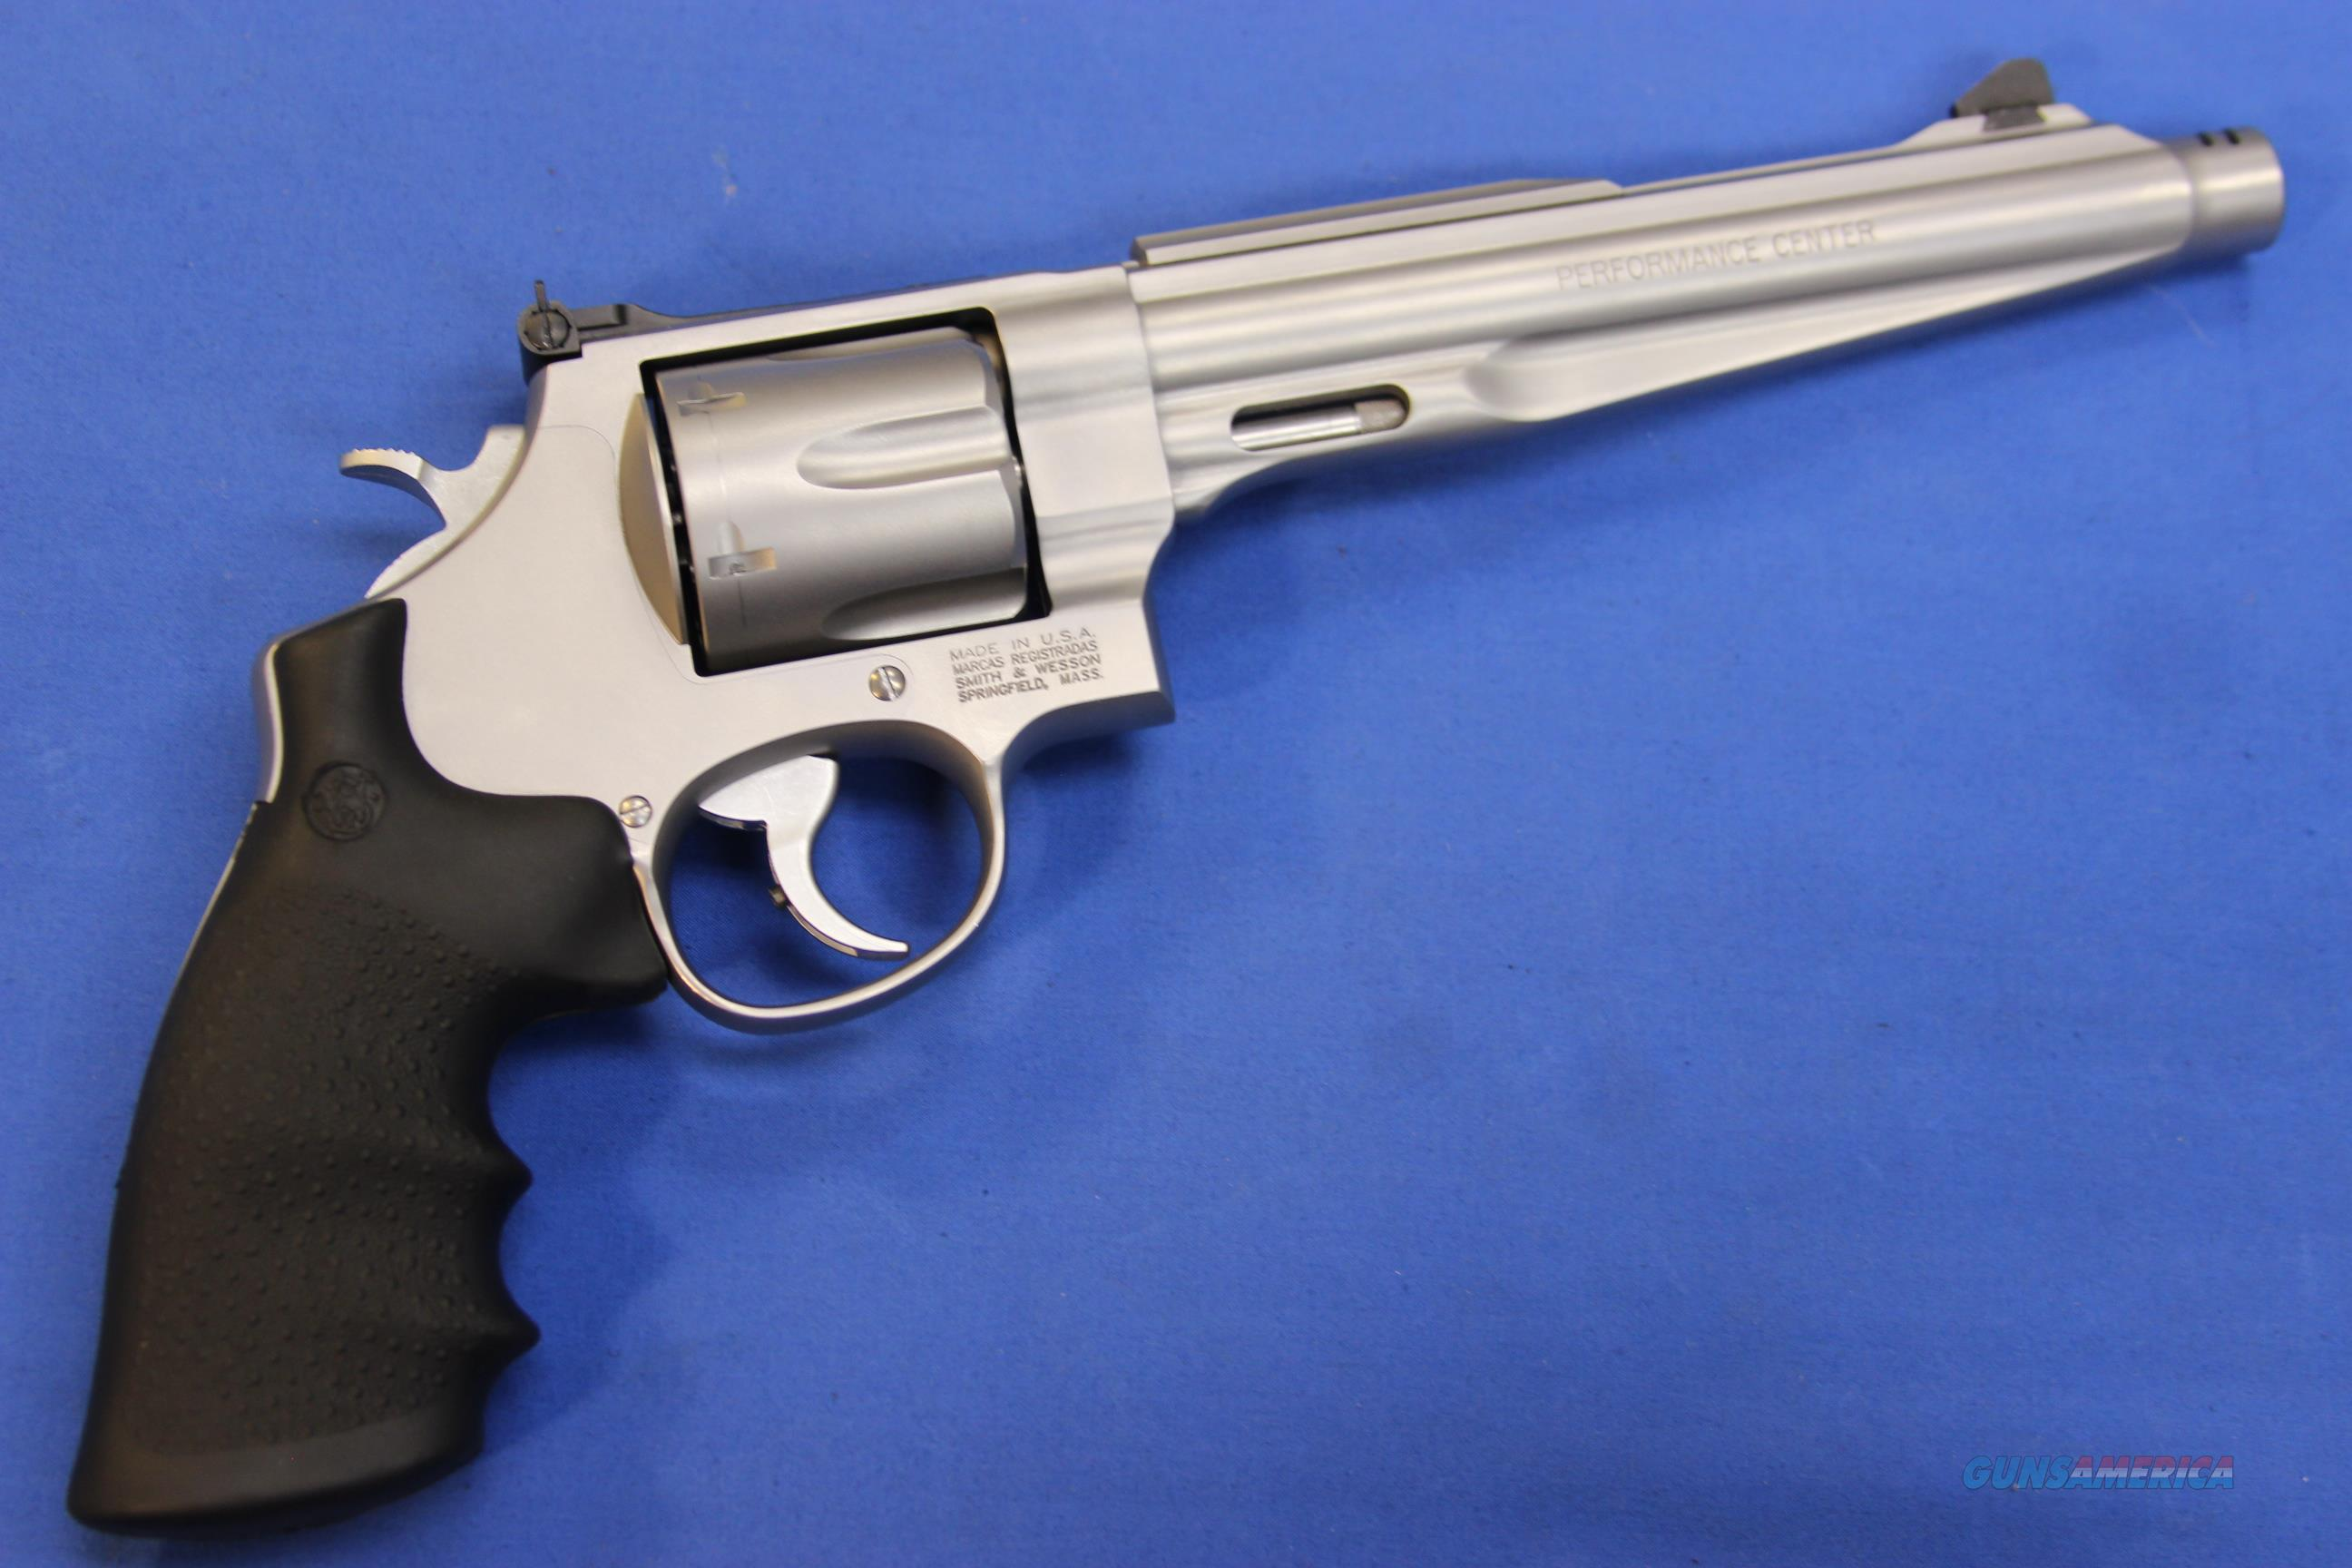 SMITH & WESSON 629 PERFORMANCE CENTER  44 MAG 7 5